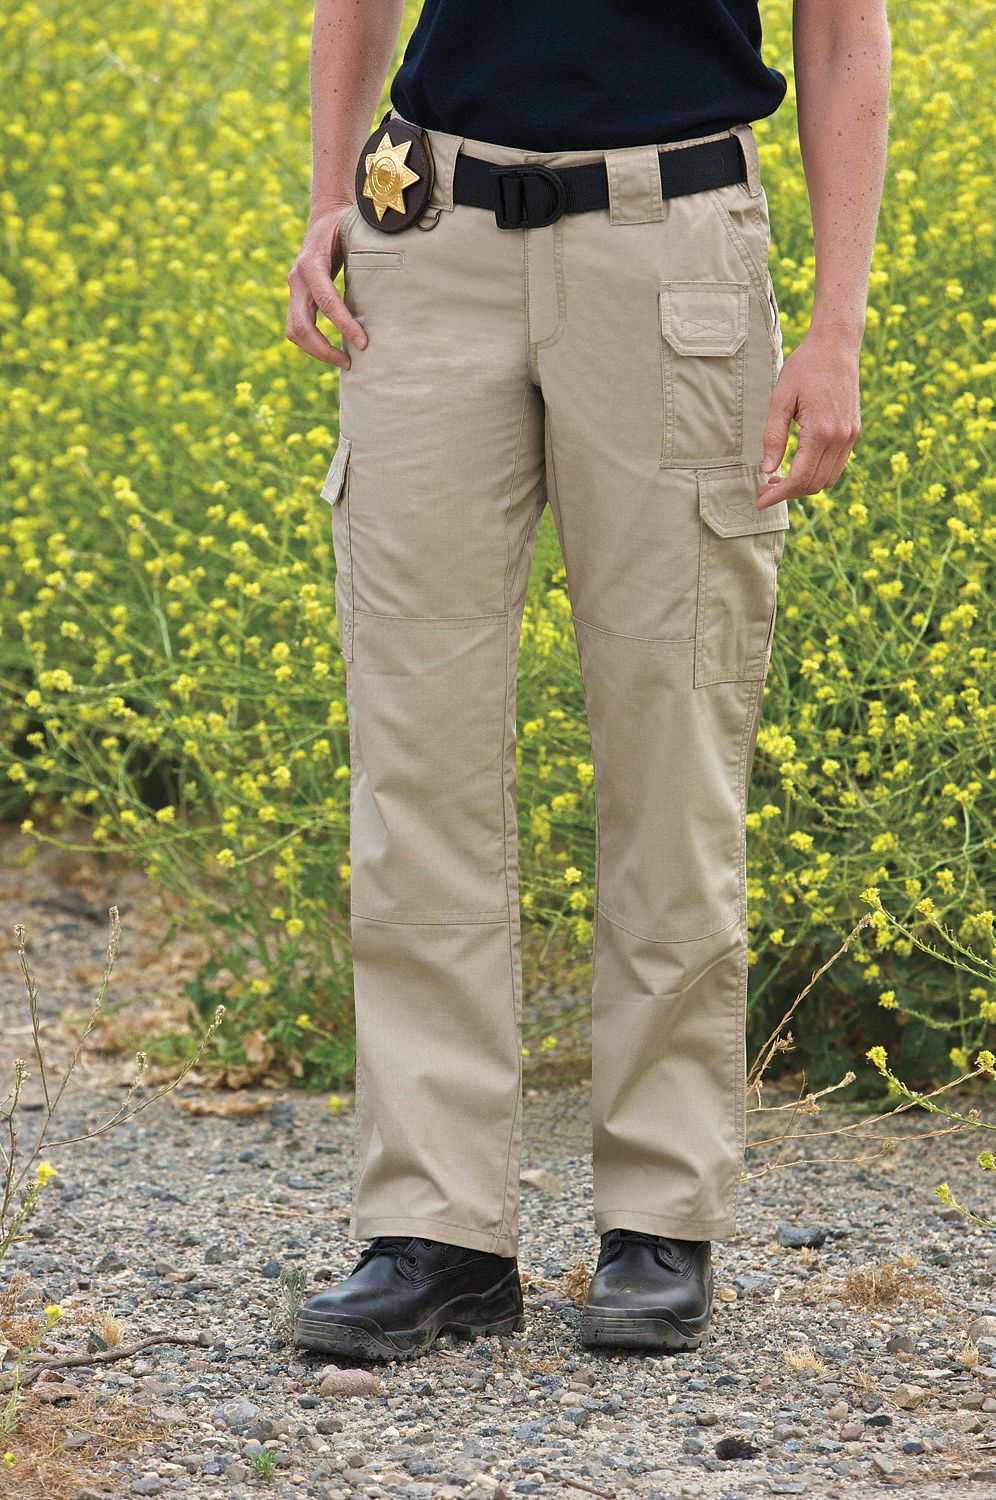 f7081359e7f6c 5.11 TACTICAL Women s Taclite Pro Pants. Size  8